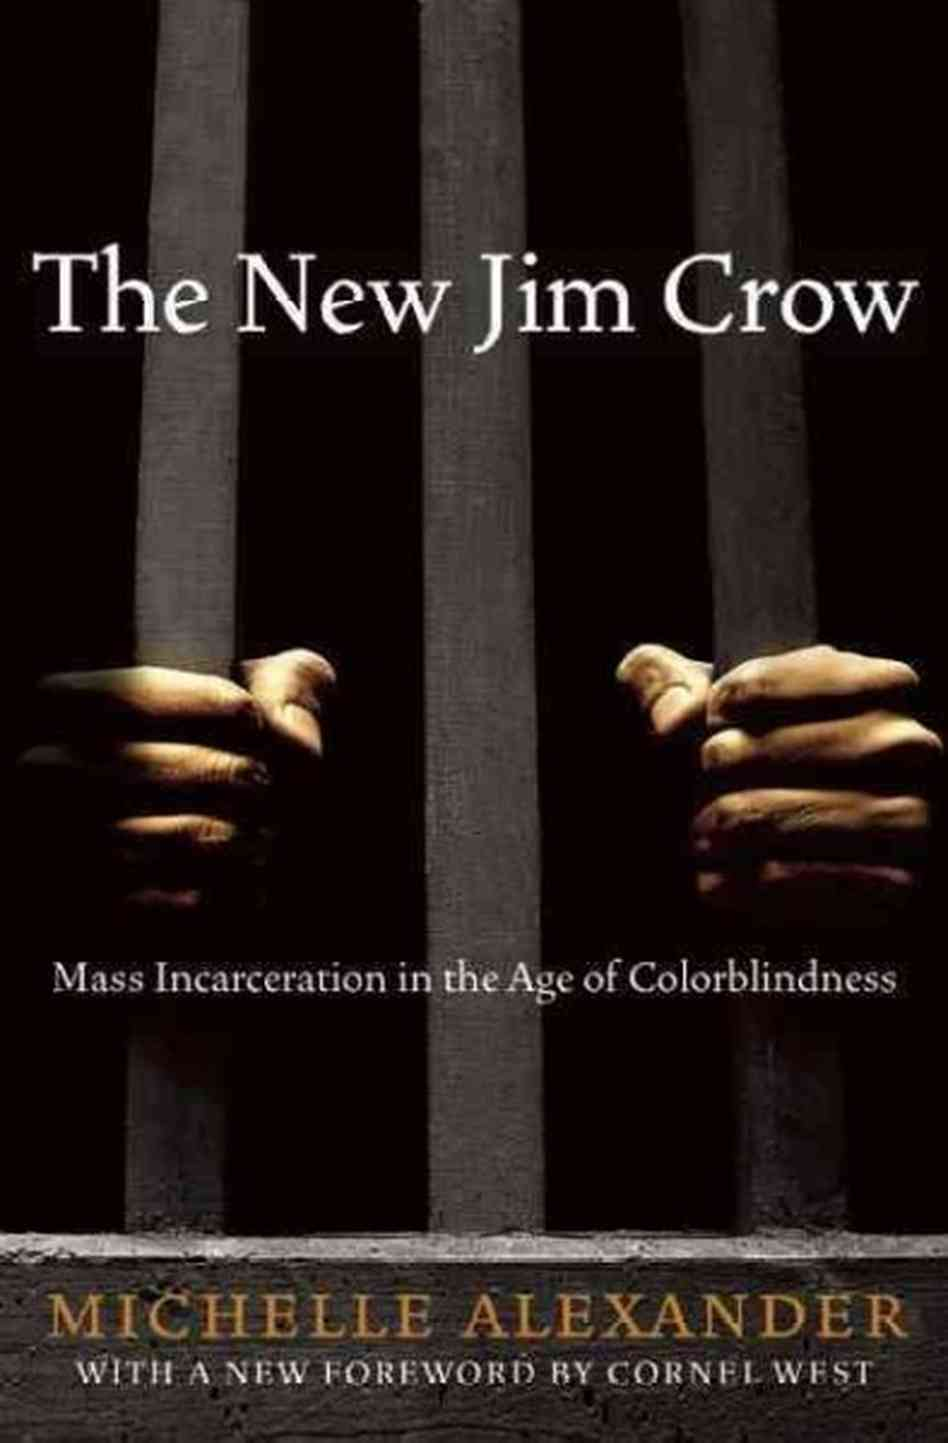 The New Jim Crow photo